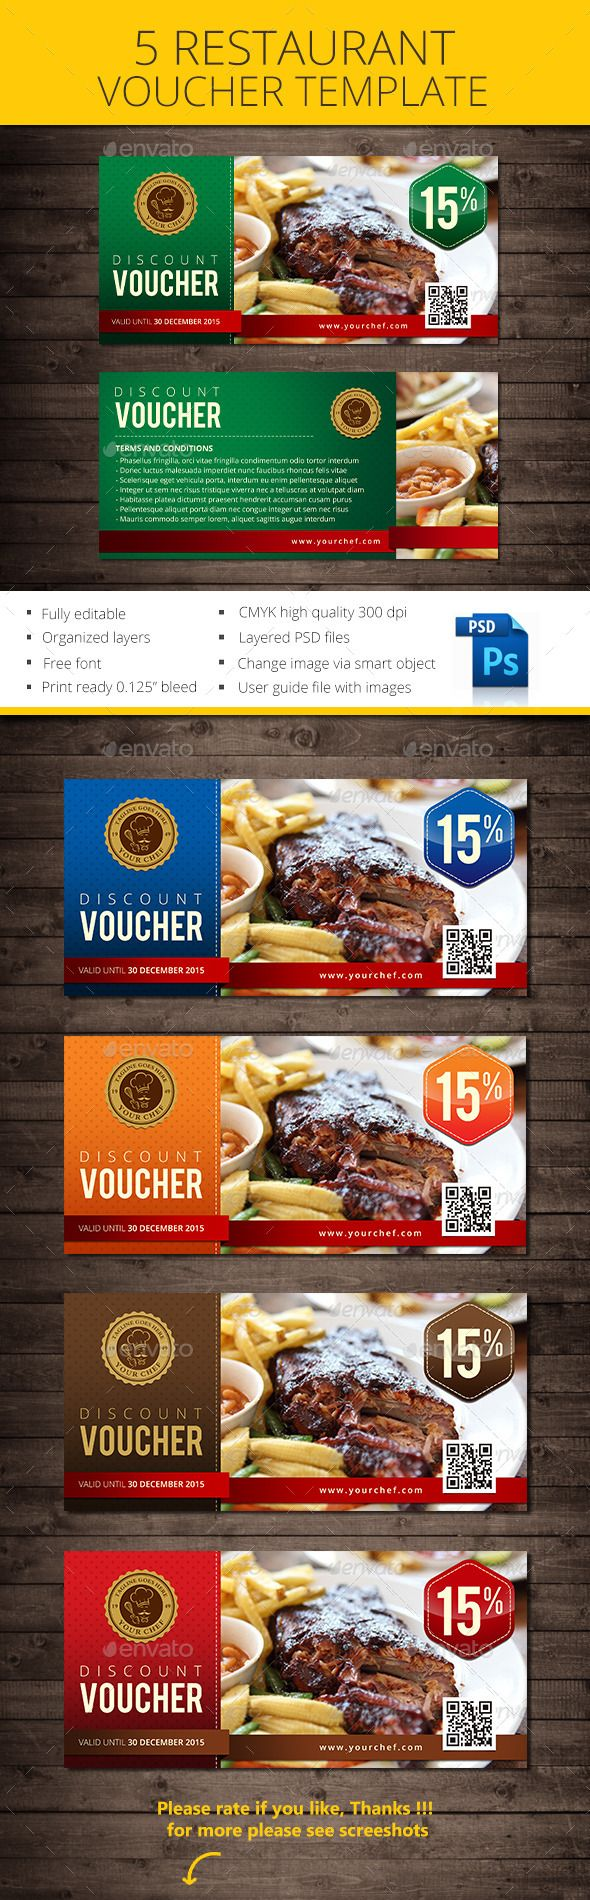 Restaurant Voucher  Lunch Voucher Template